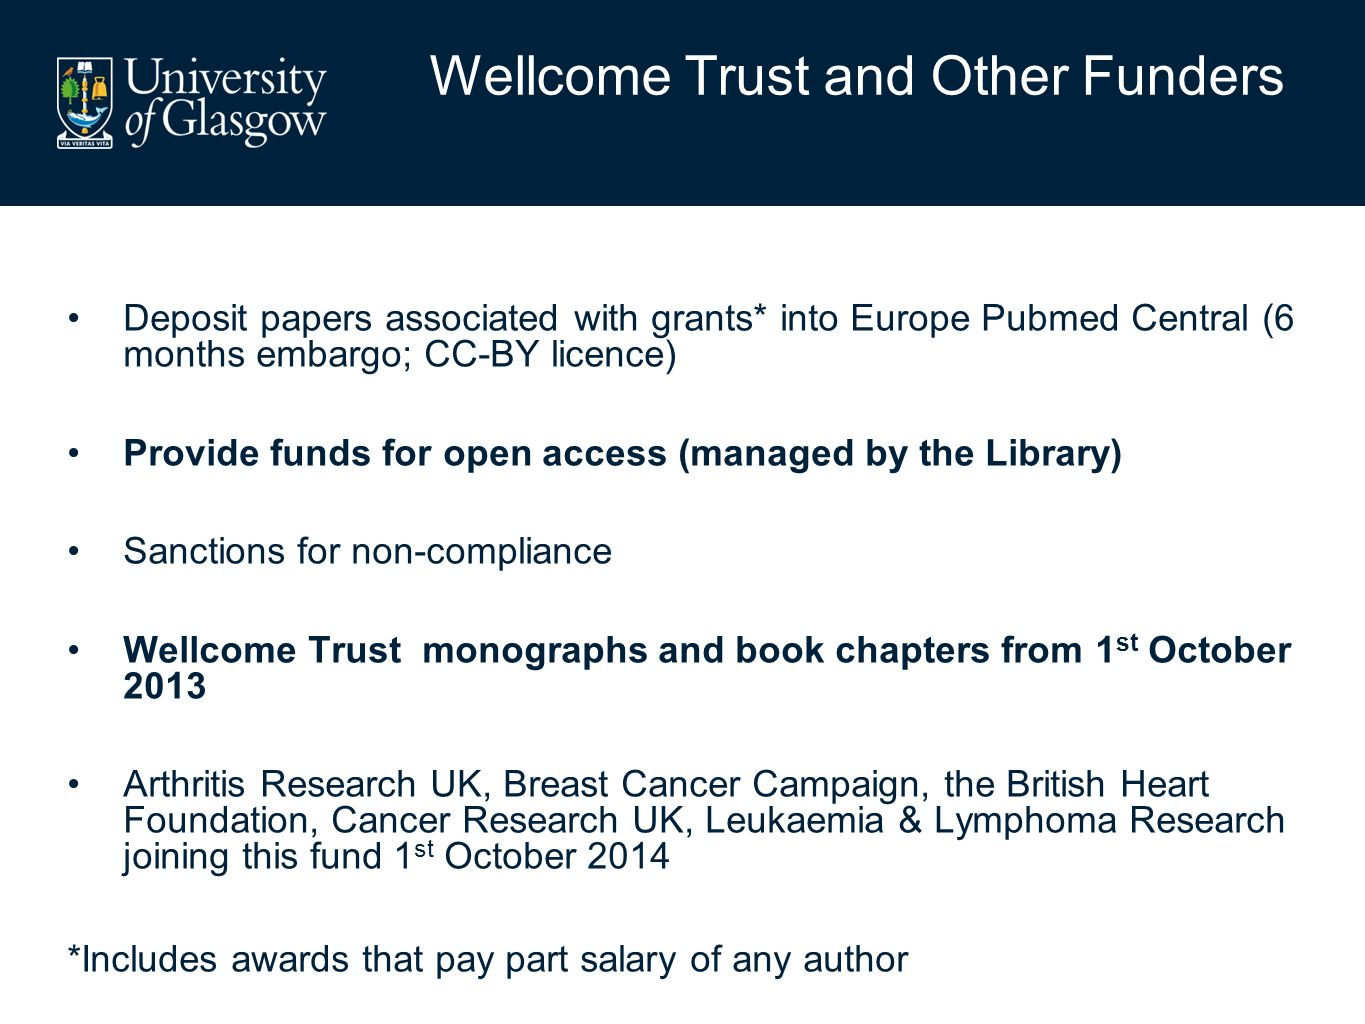 Deposit papers associated with grants* into Europe Pubmed Central (6 months embargo; CC-BY licence) Provide funds for open access (managed by the Libr